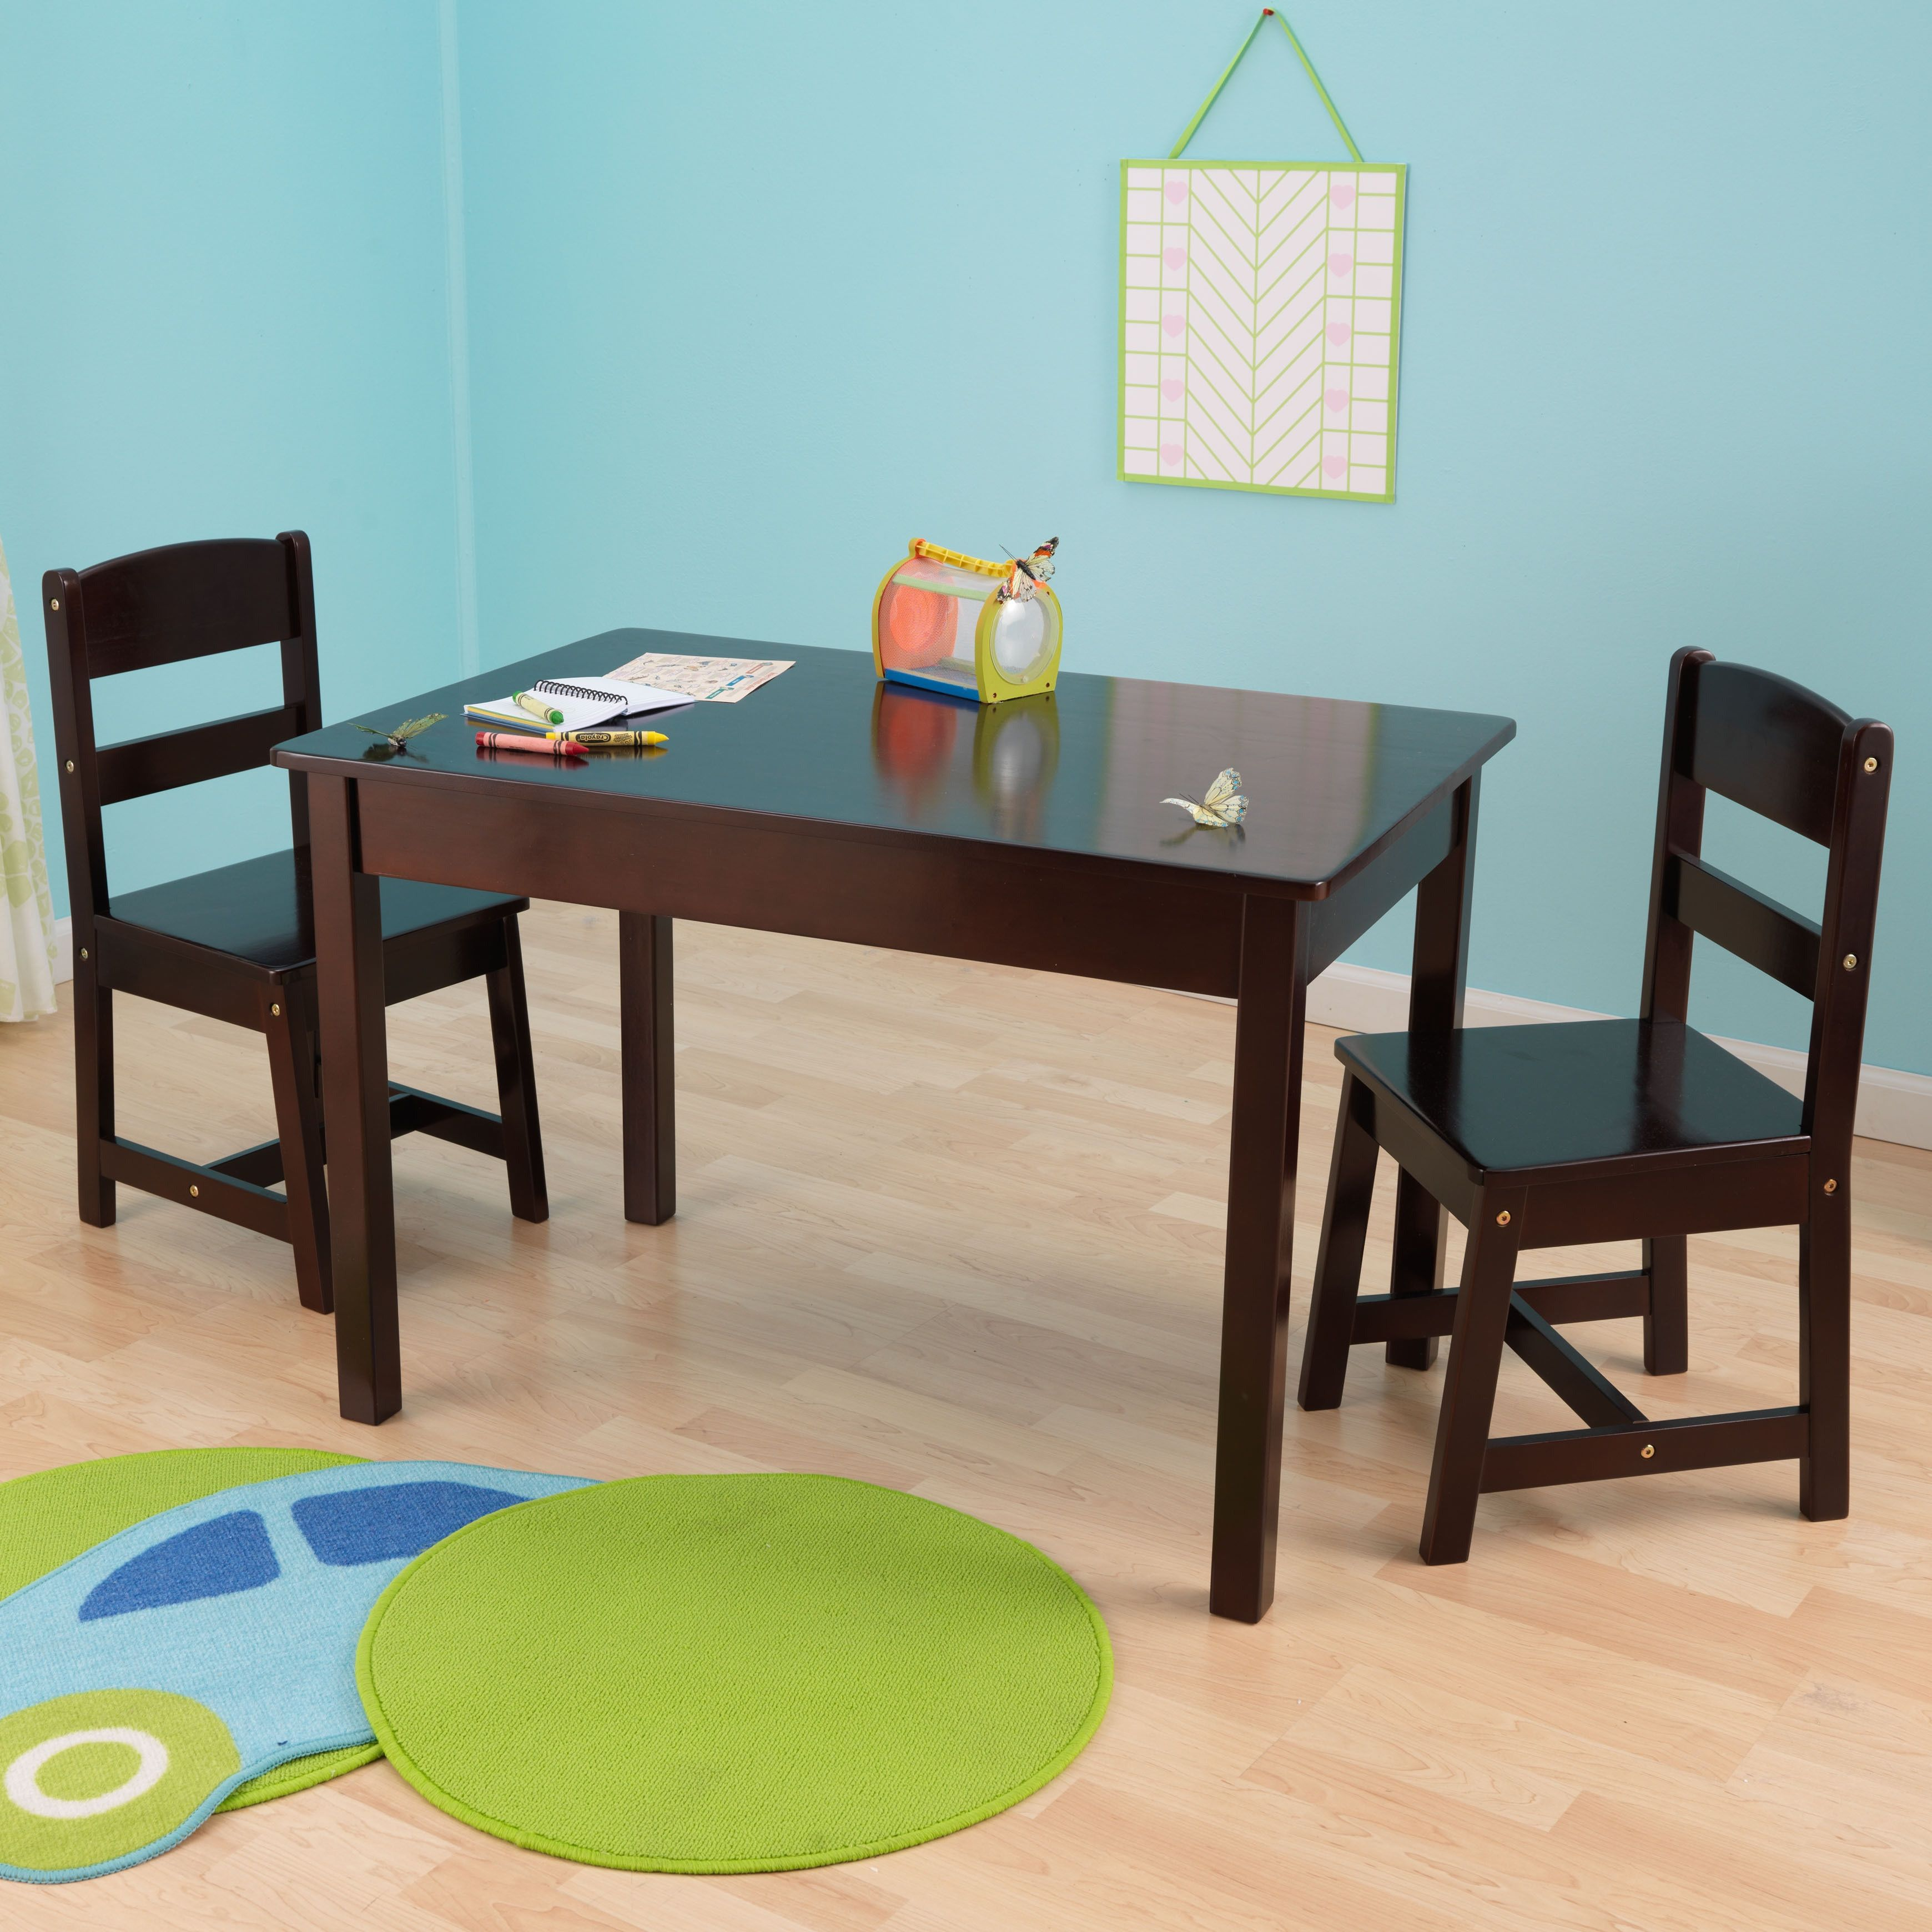 Table And Chair Set For 5 Year Old | http://lachpage.com | Pinterest